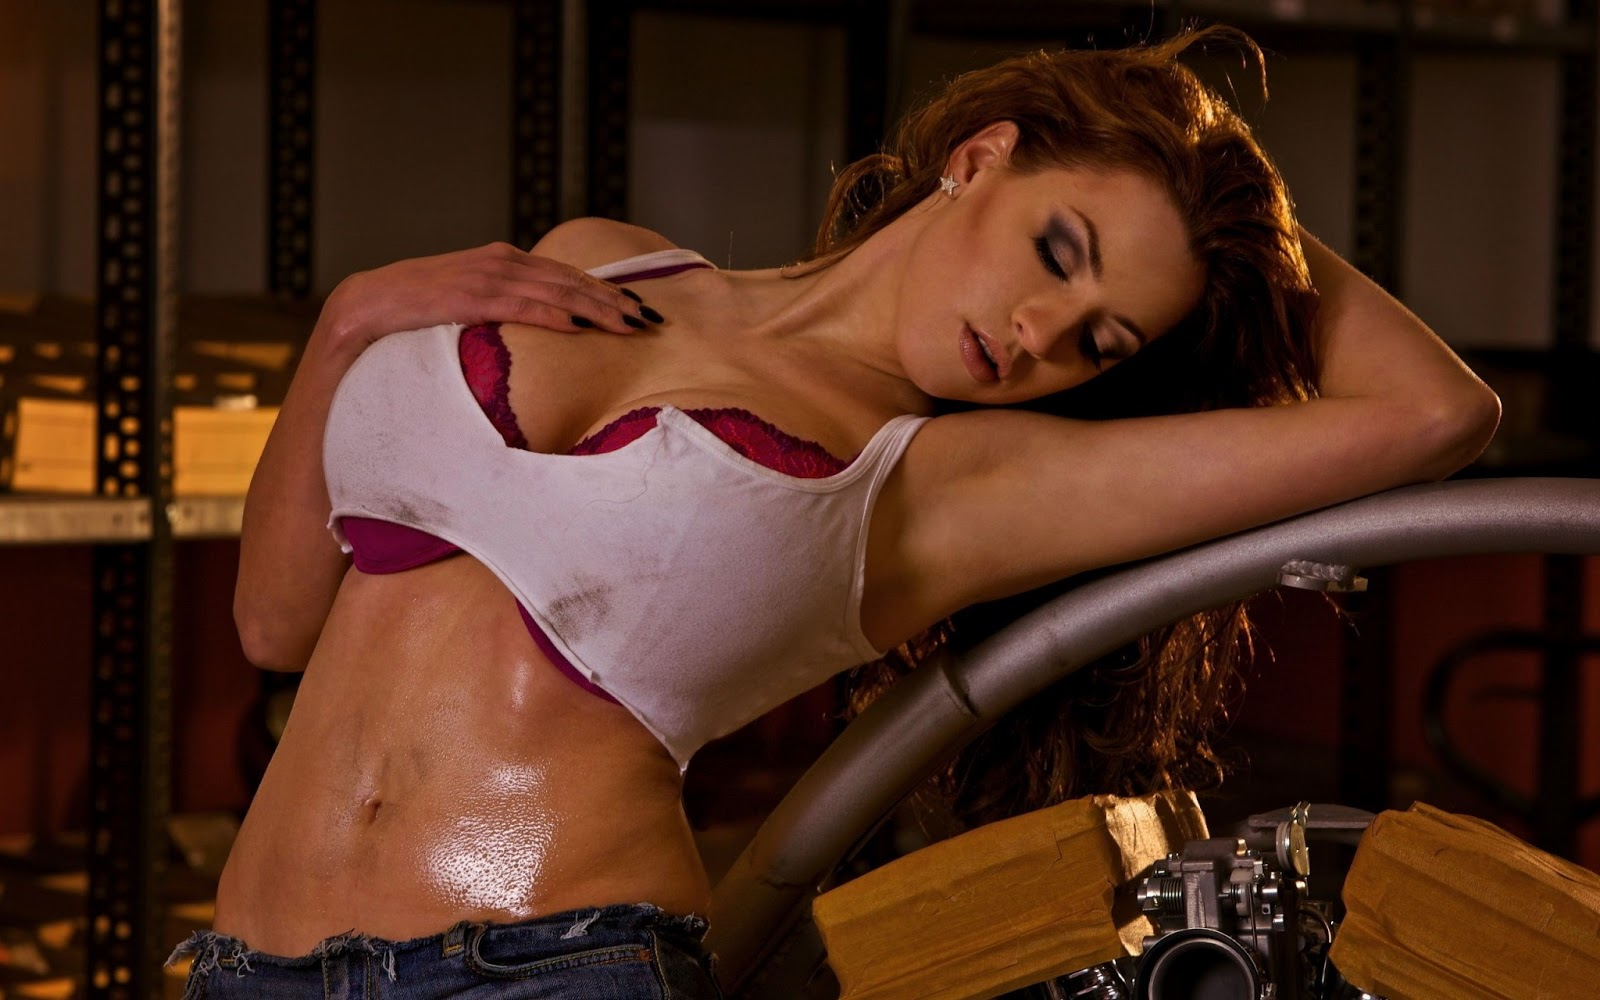 Jordan Carver Busty Babe  Housewife Fucked-4205